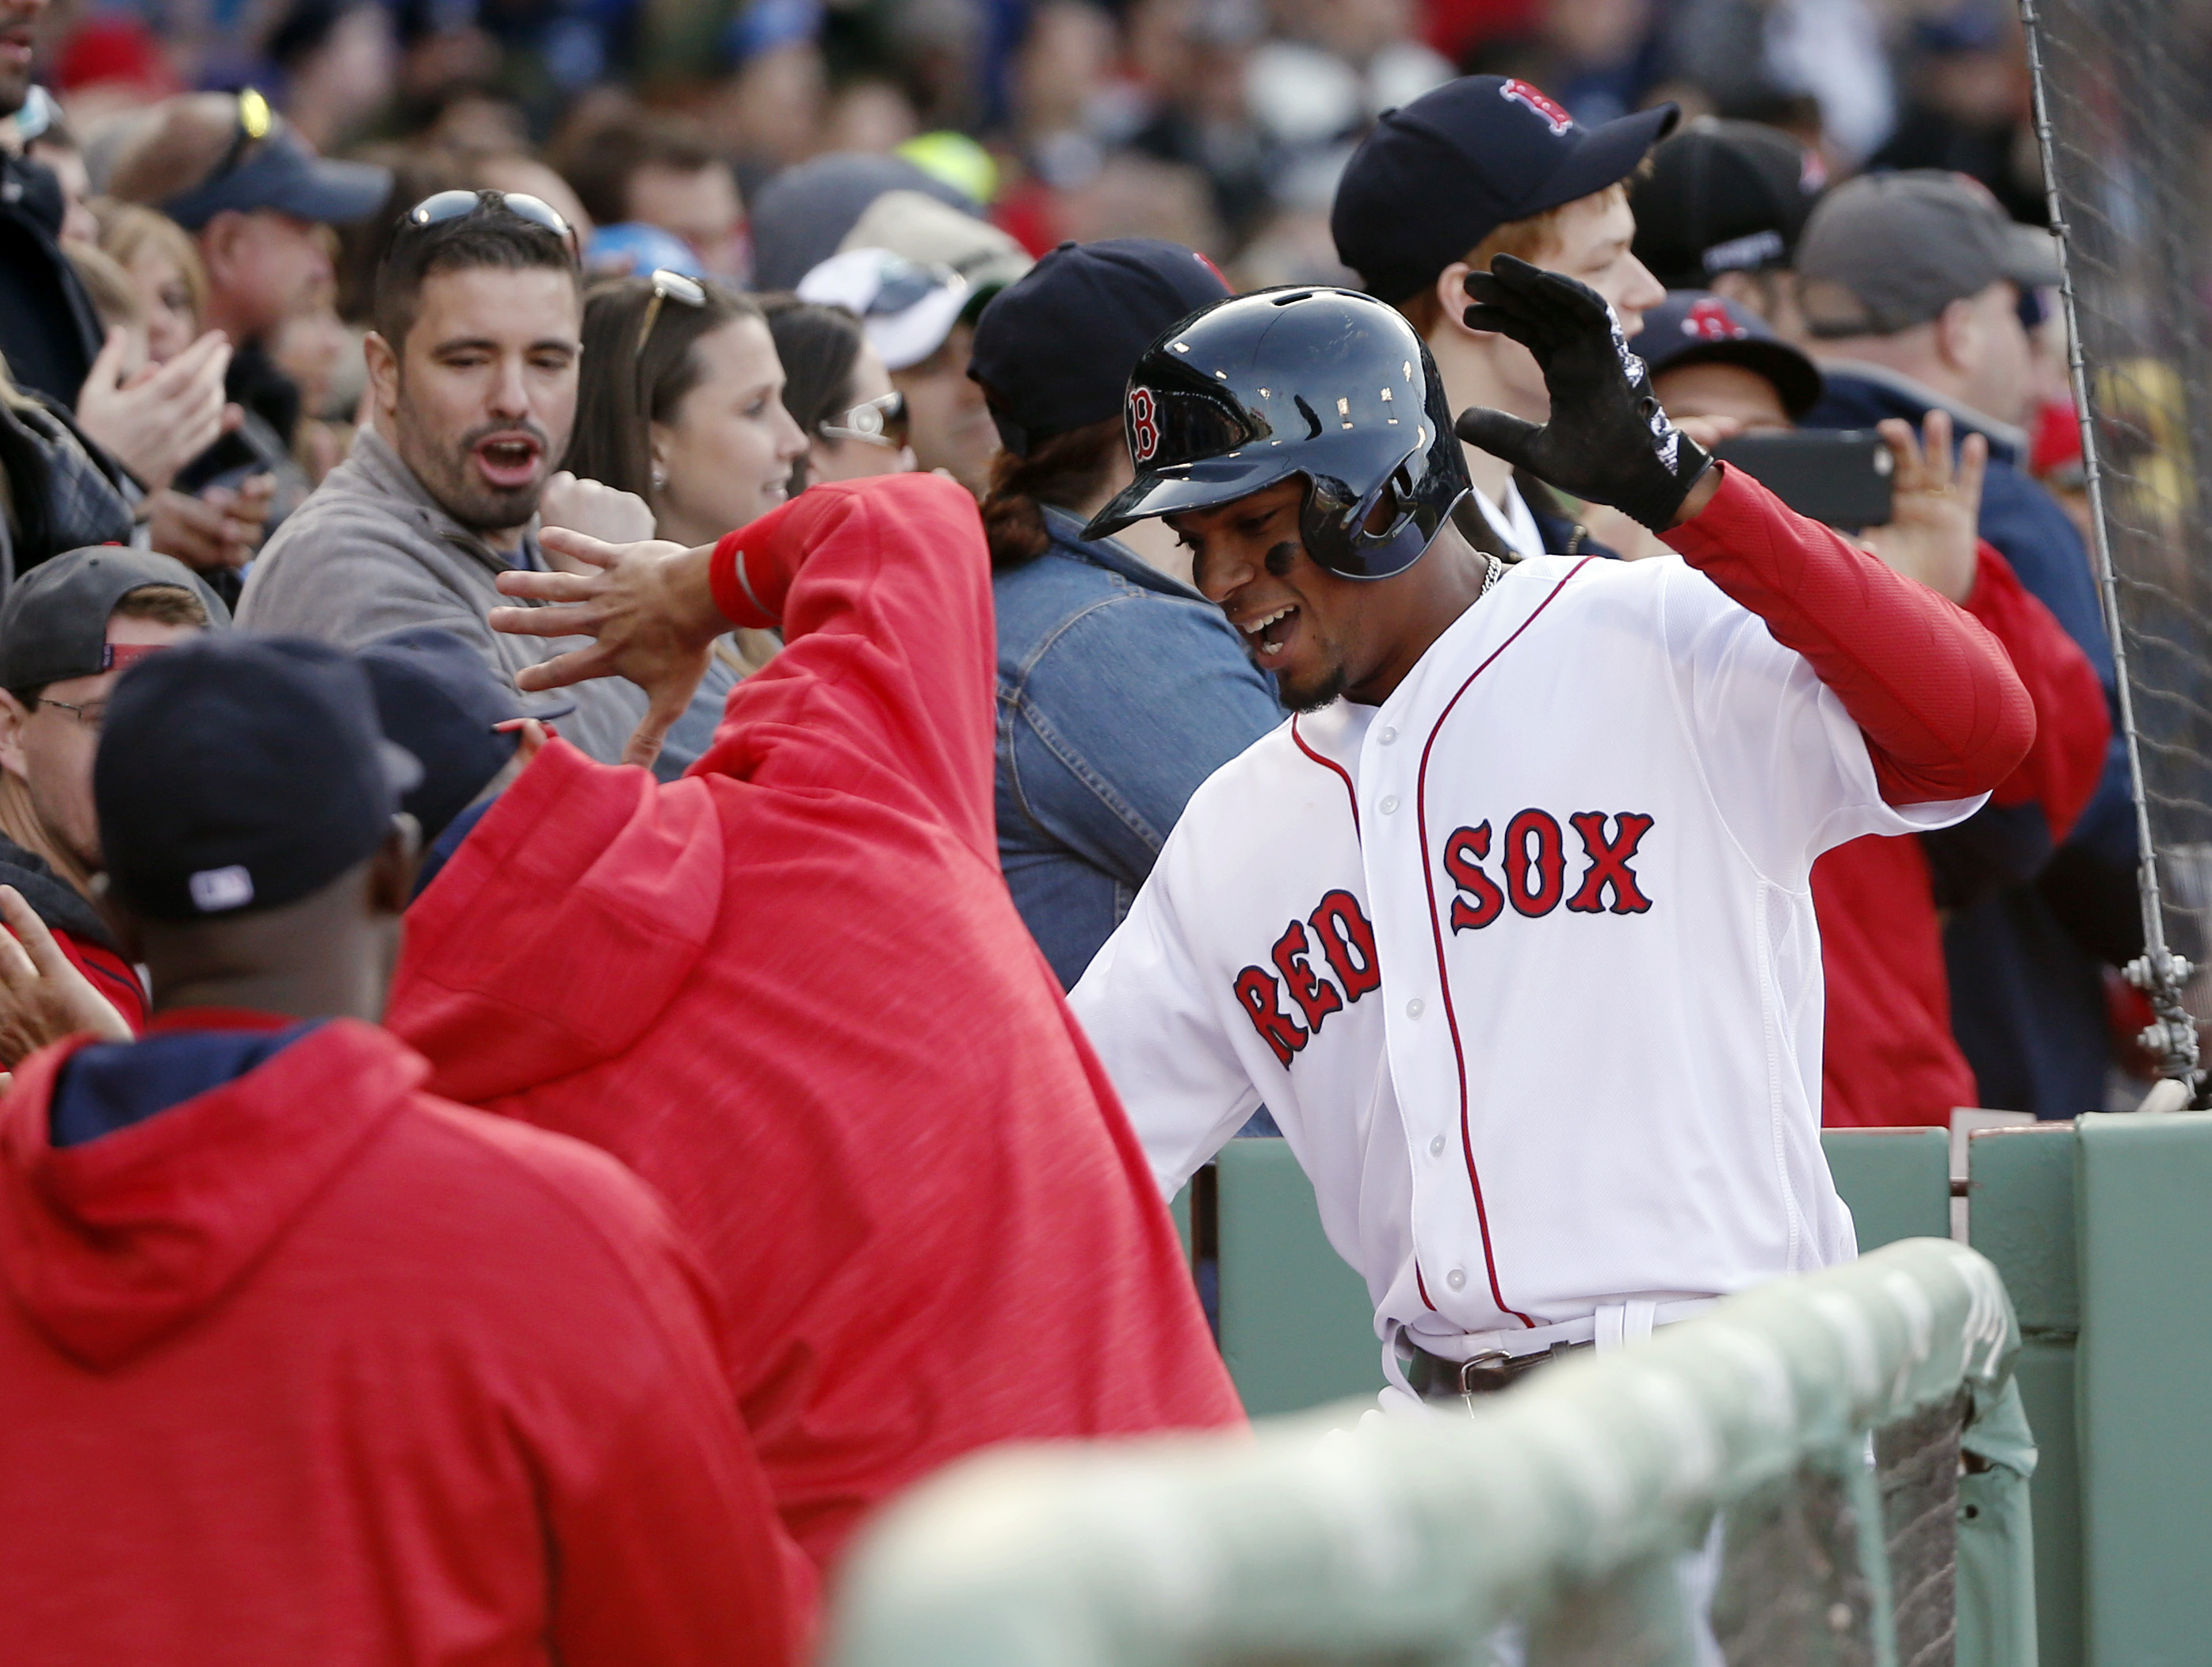 Boston Red Sox's Xander Bogaerts is congratulated at the dugout after hitting a three-run home run scoring Dustin Pedroia and Jackie Bradley Jr. during the third inning of a baseball game against the Toronto Blue Jays at Fenway Park, Saturday, April 16, 2